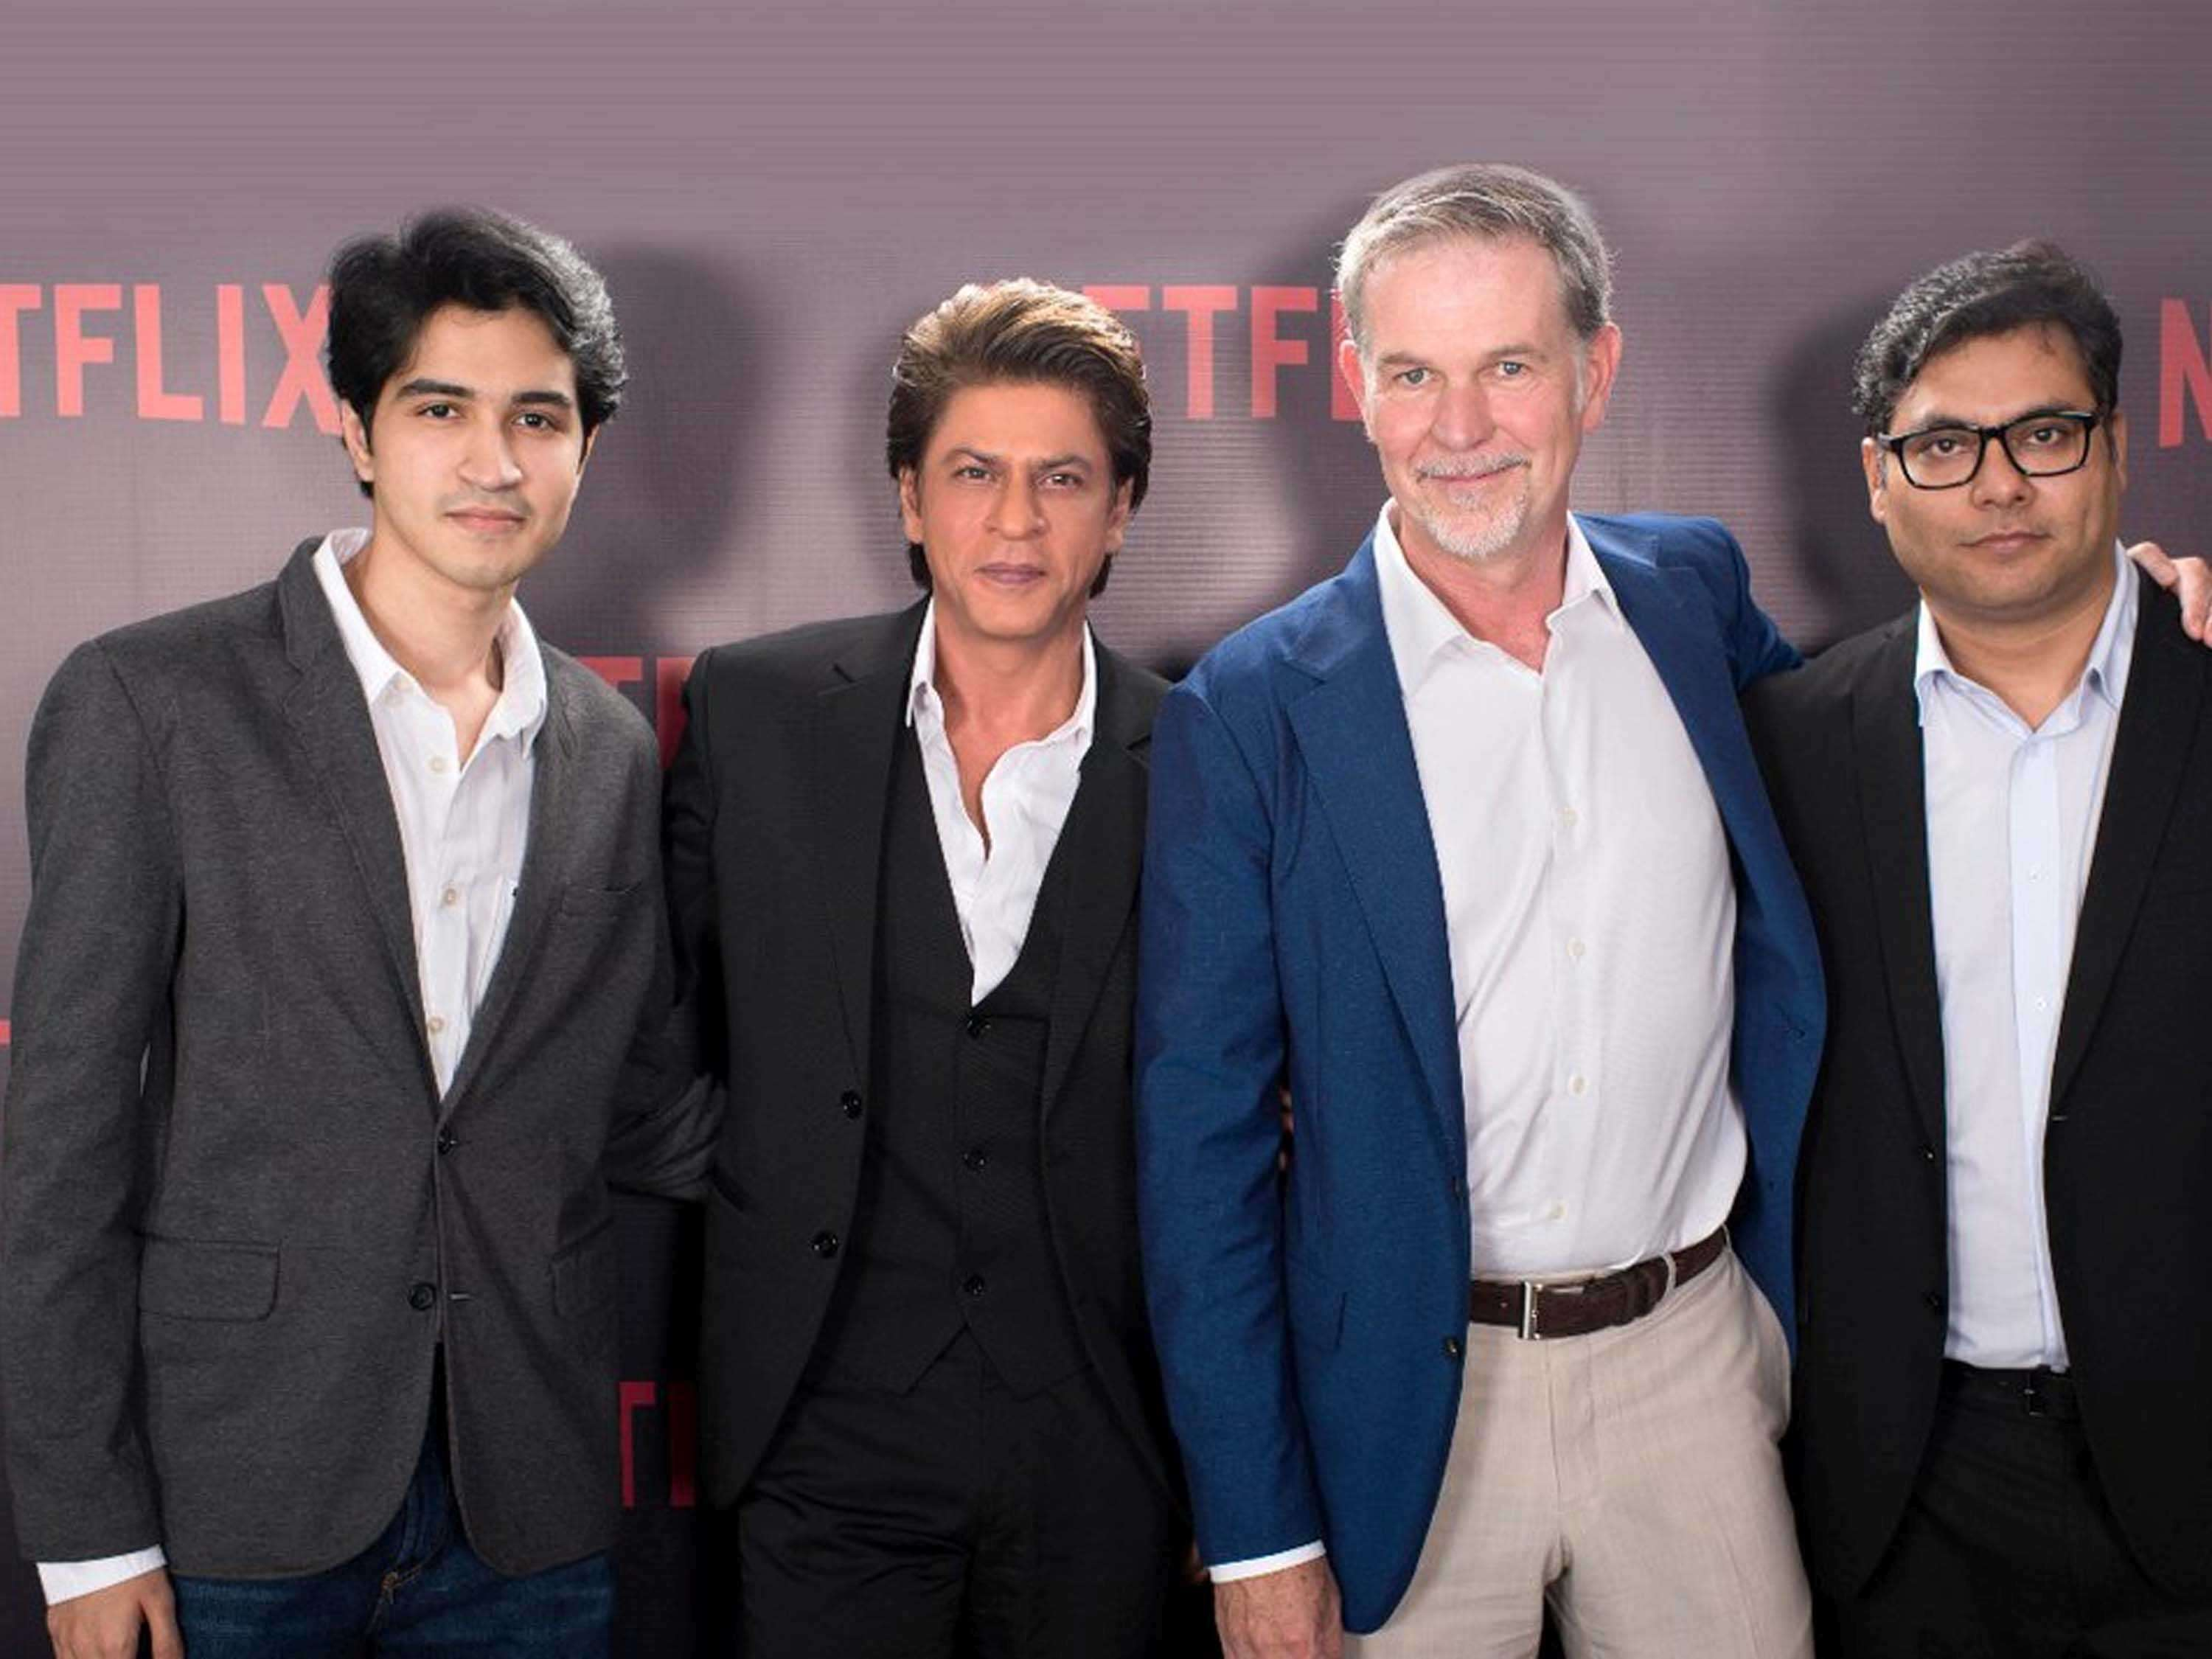 Shah Rukh Khan and Netflix collab for the adaptation of The Bard of Blood